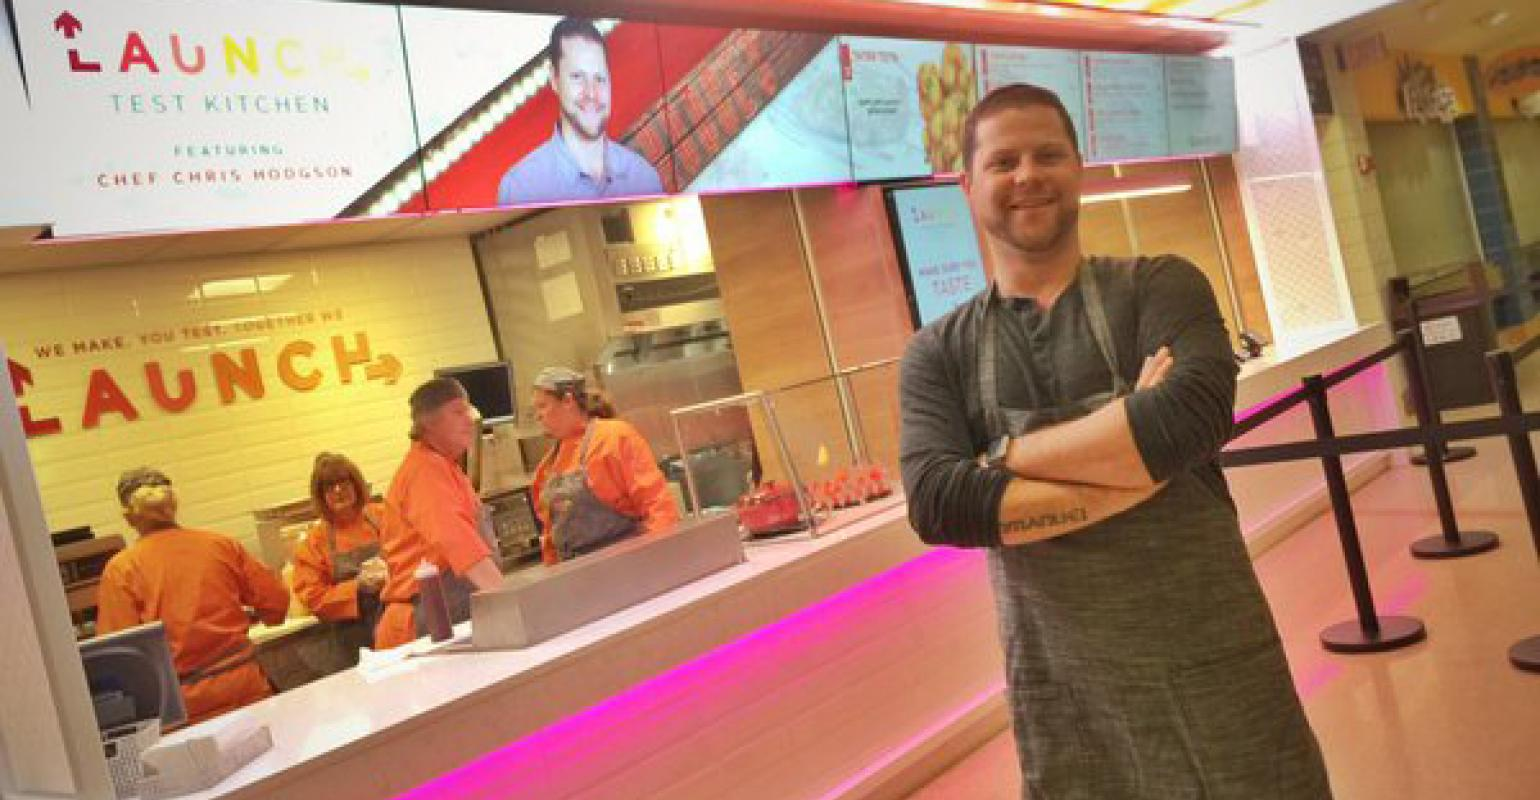 Aramark launches new test kitchen, pop-up concept with local